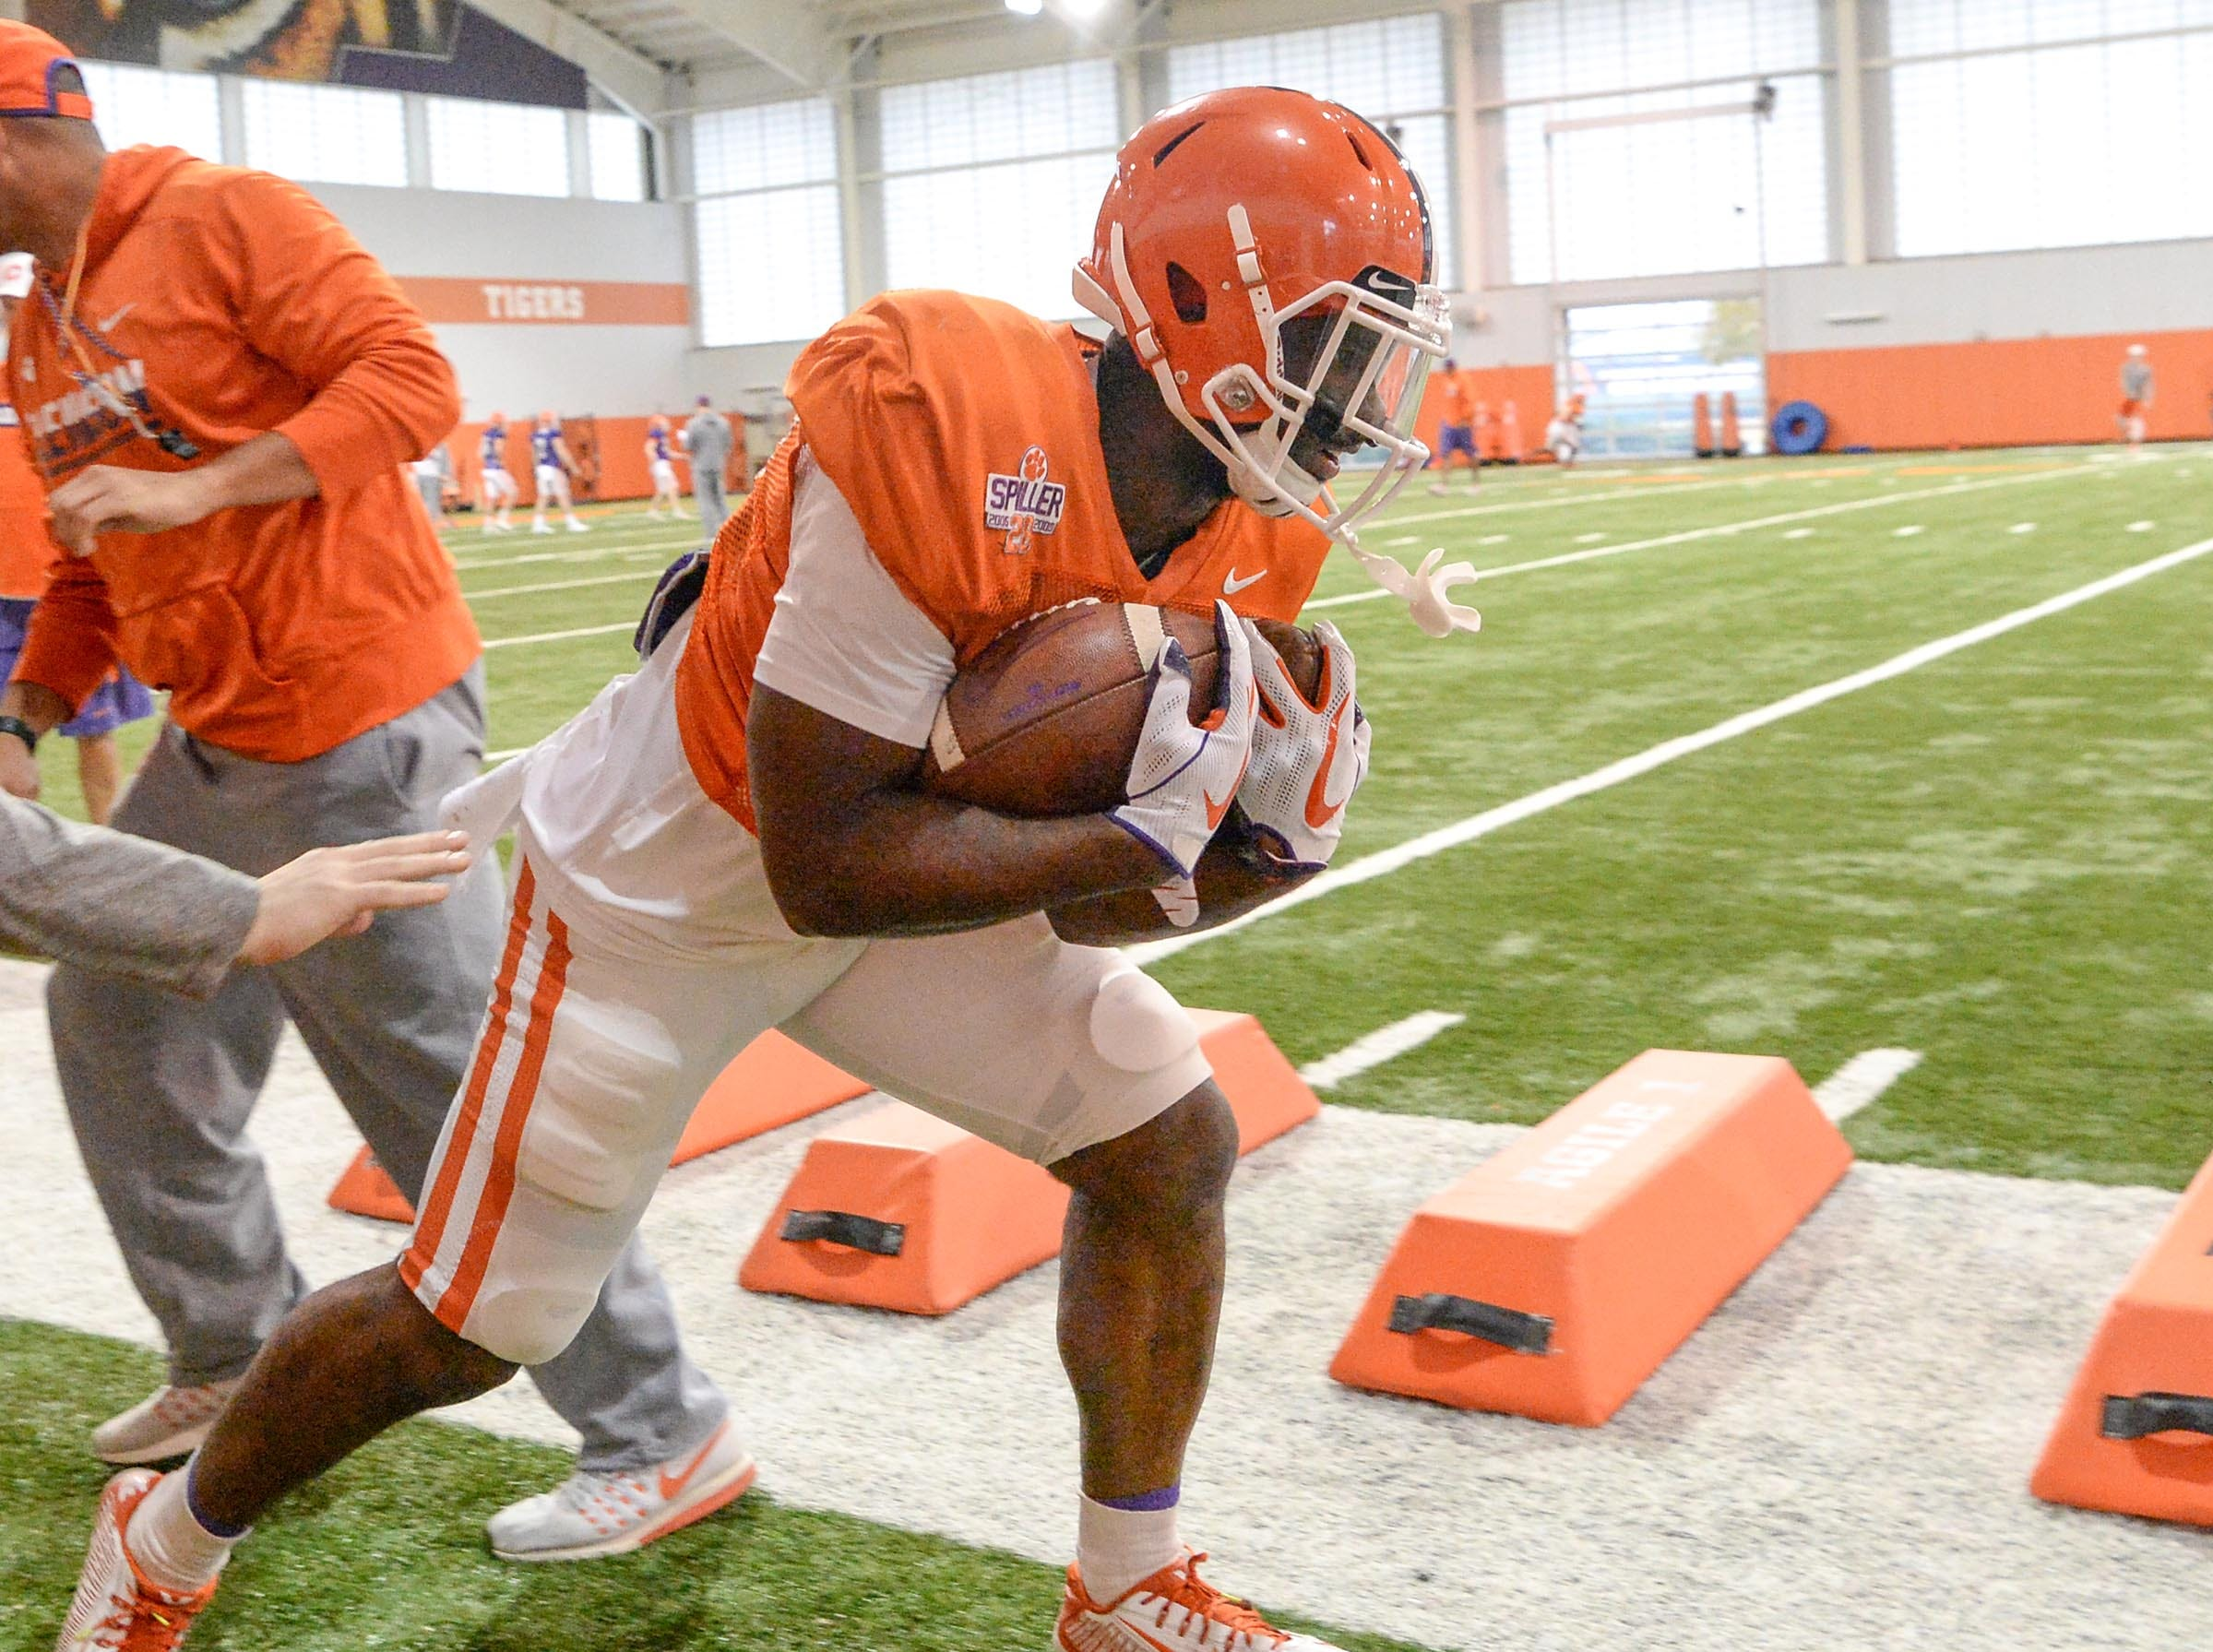 Clemson running back Tavien Feaster (28) runs a drill with two footballs during practice for the Cotton Bowl at the Poe Indoor Facility in Clemson Friday, December 14, 2018.